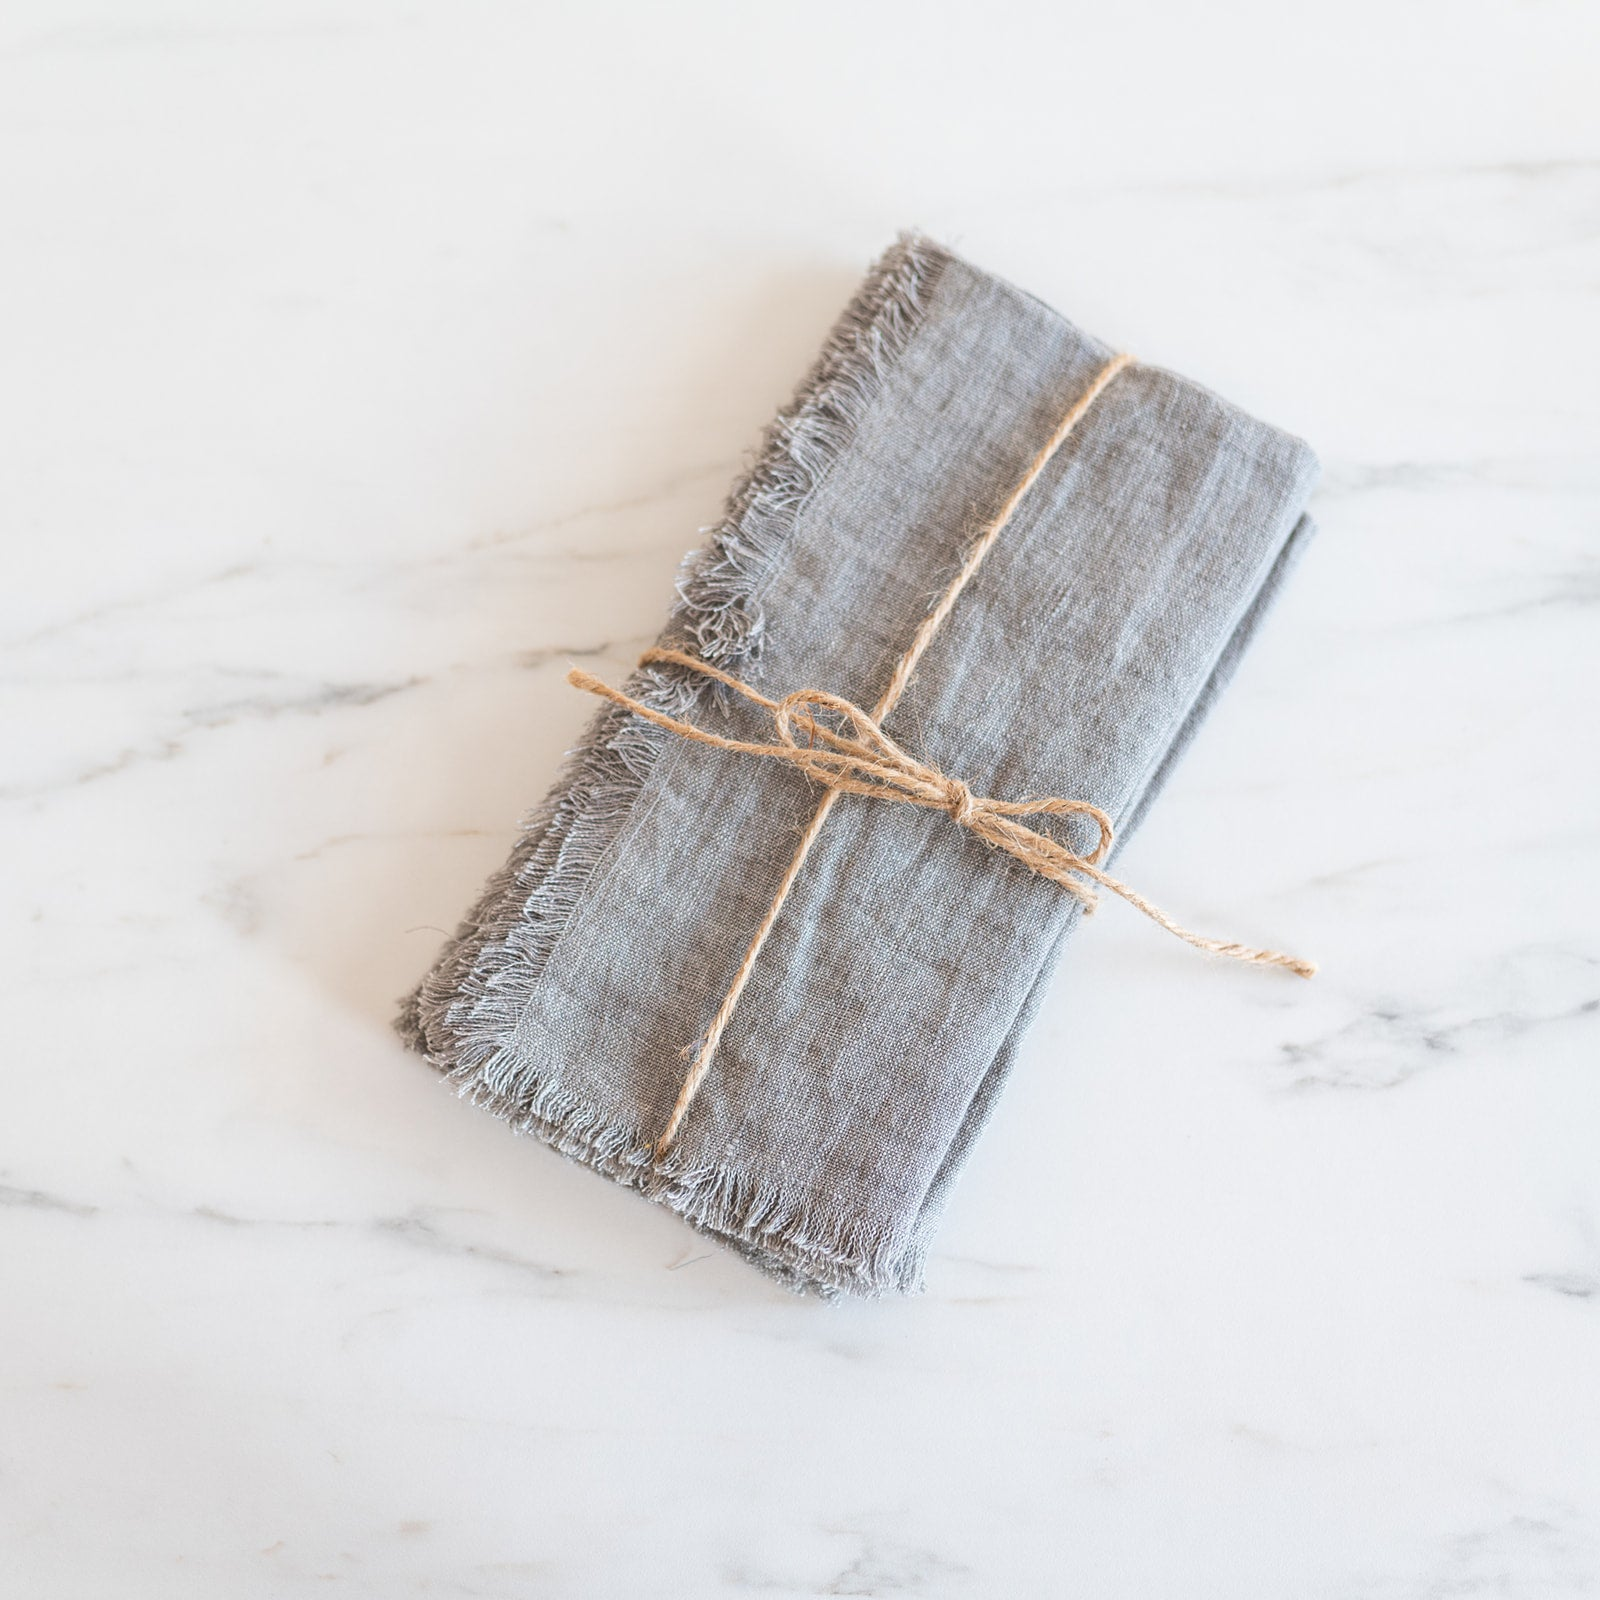 Warm Grey Linen Napkin Set